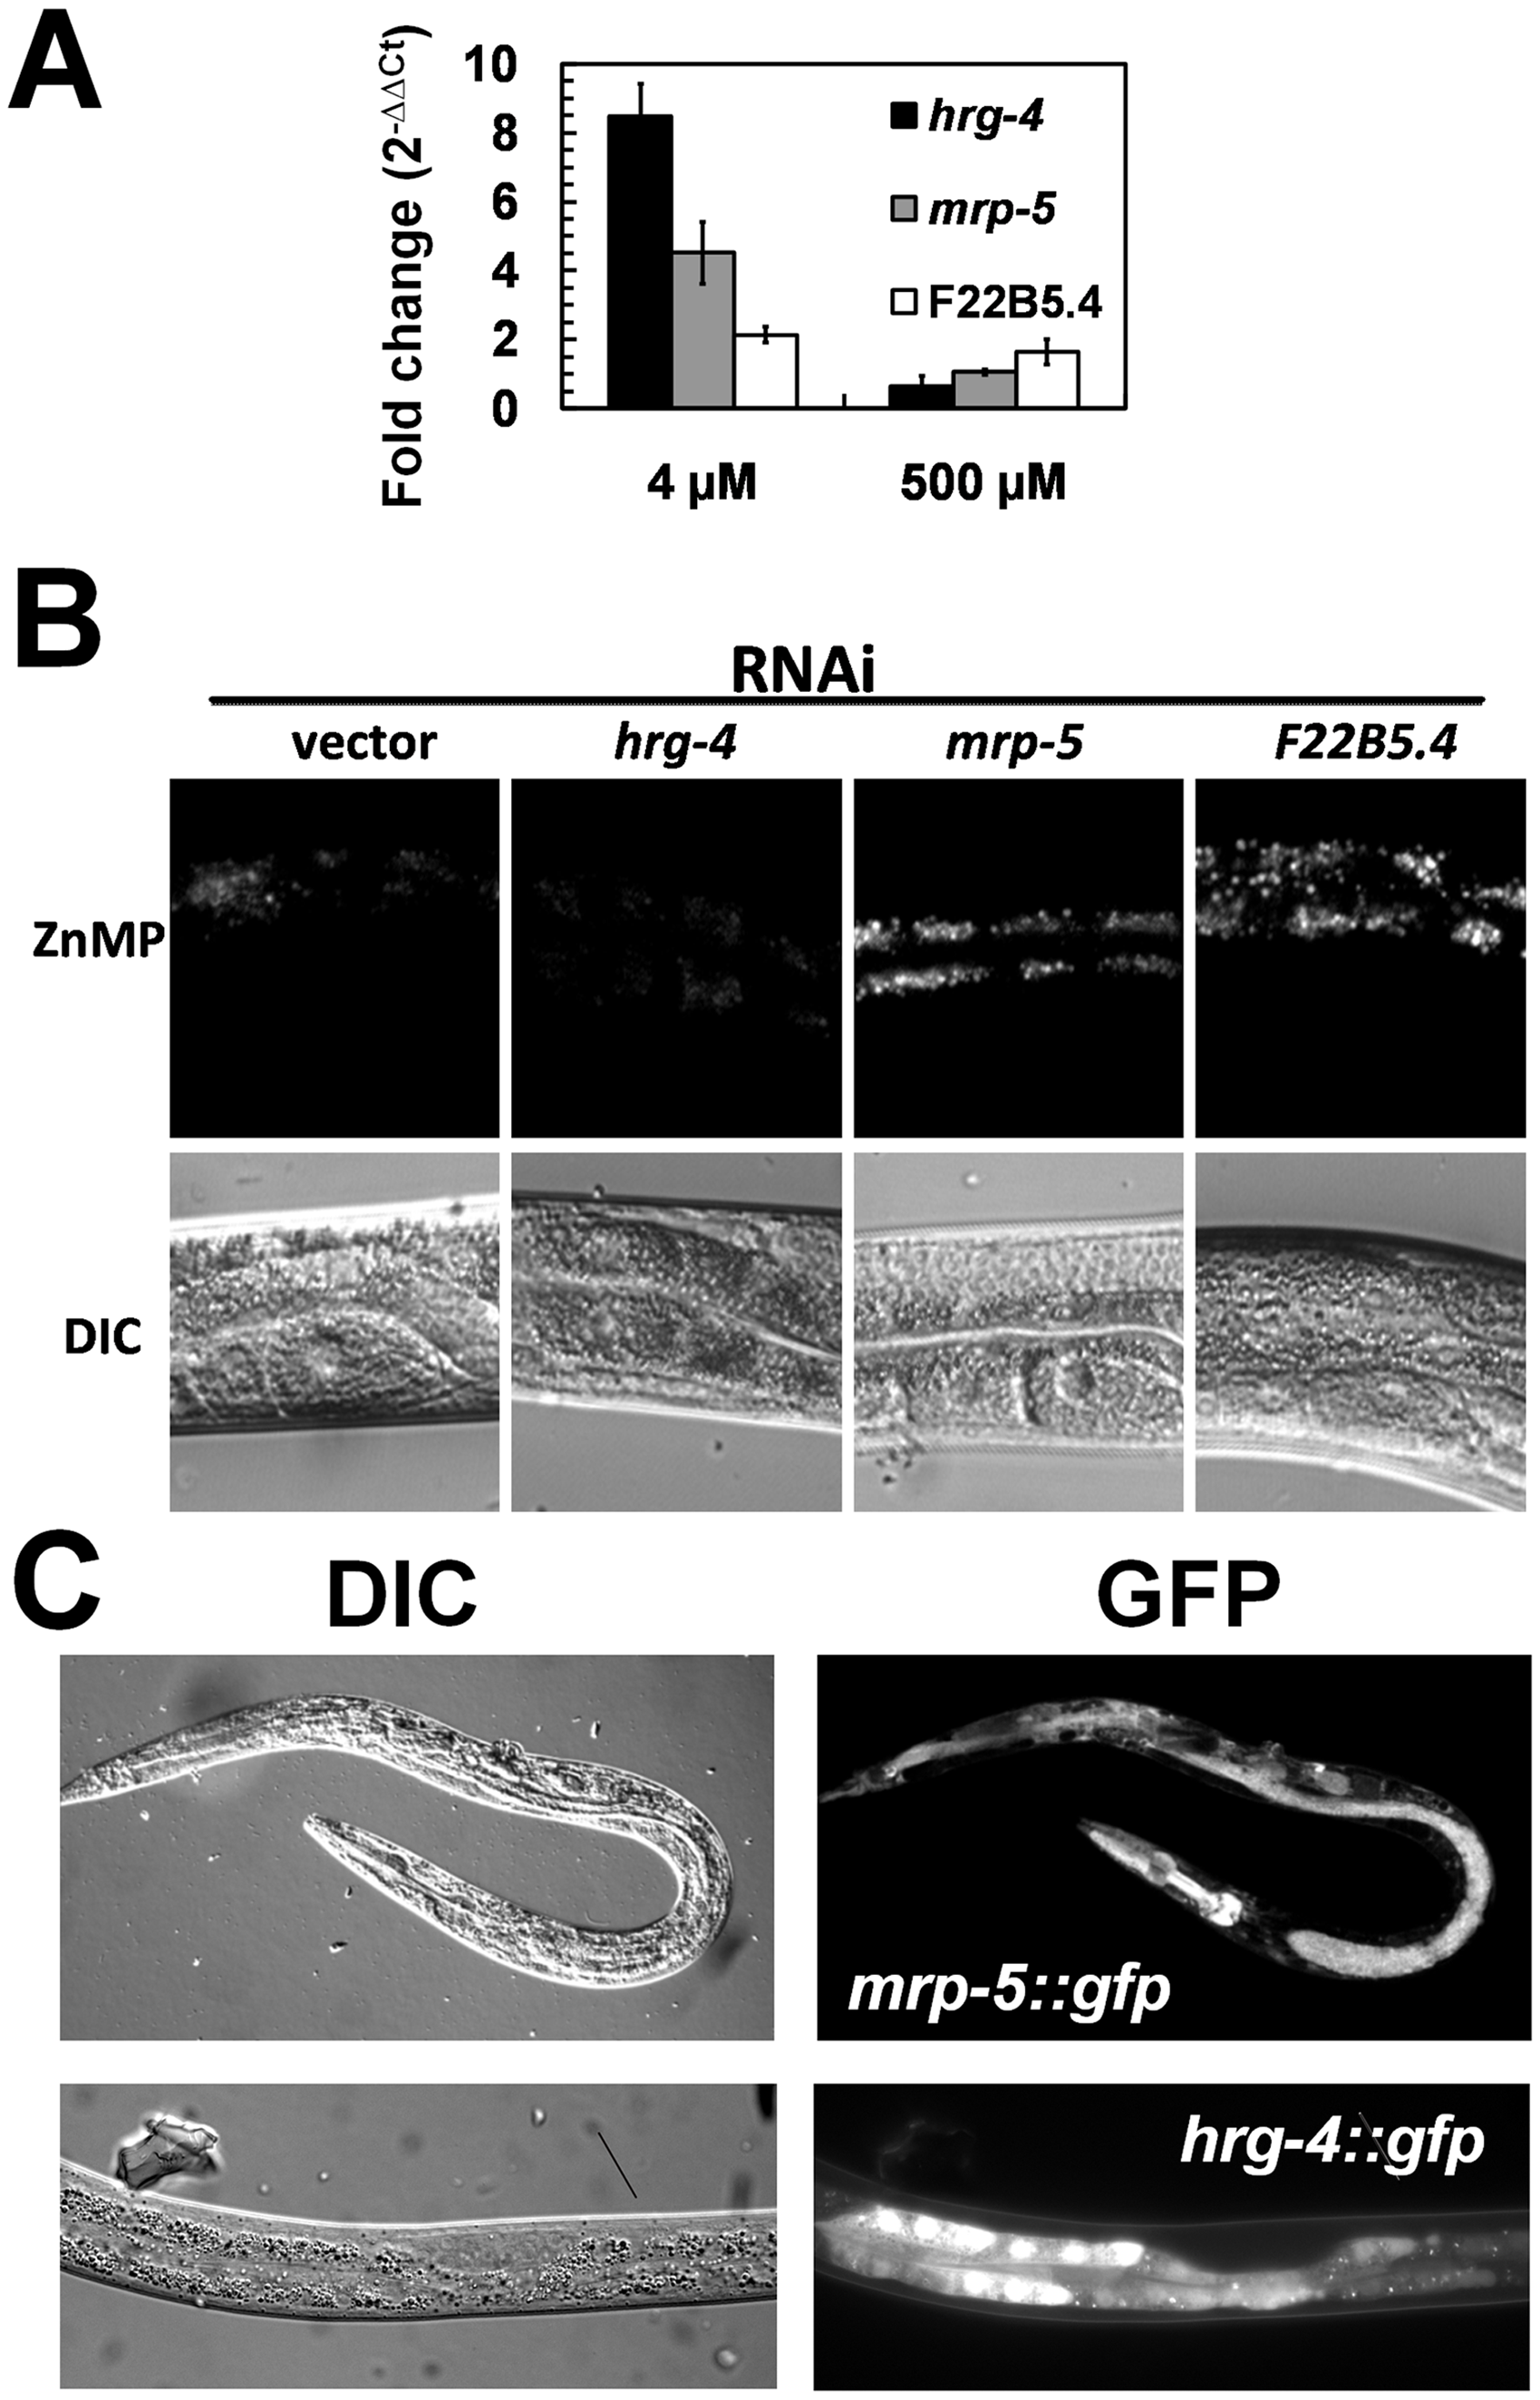 Characterization of the three candidate genes identified from the functional RNAi screens.